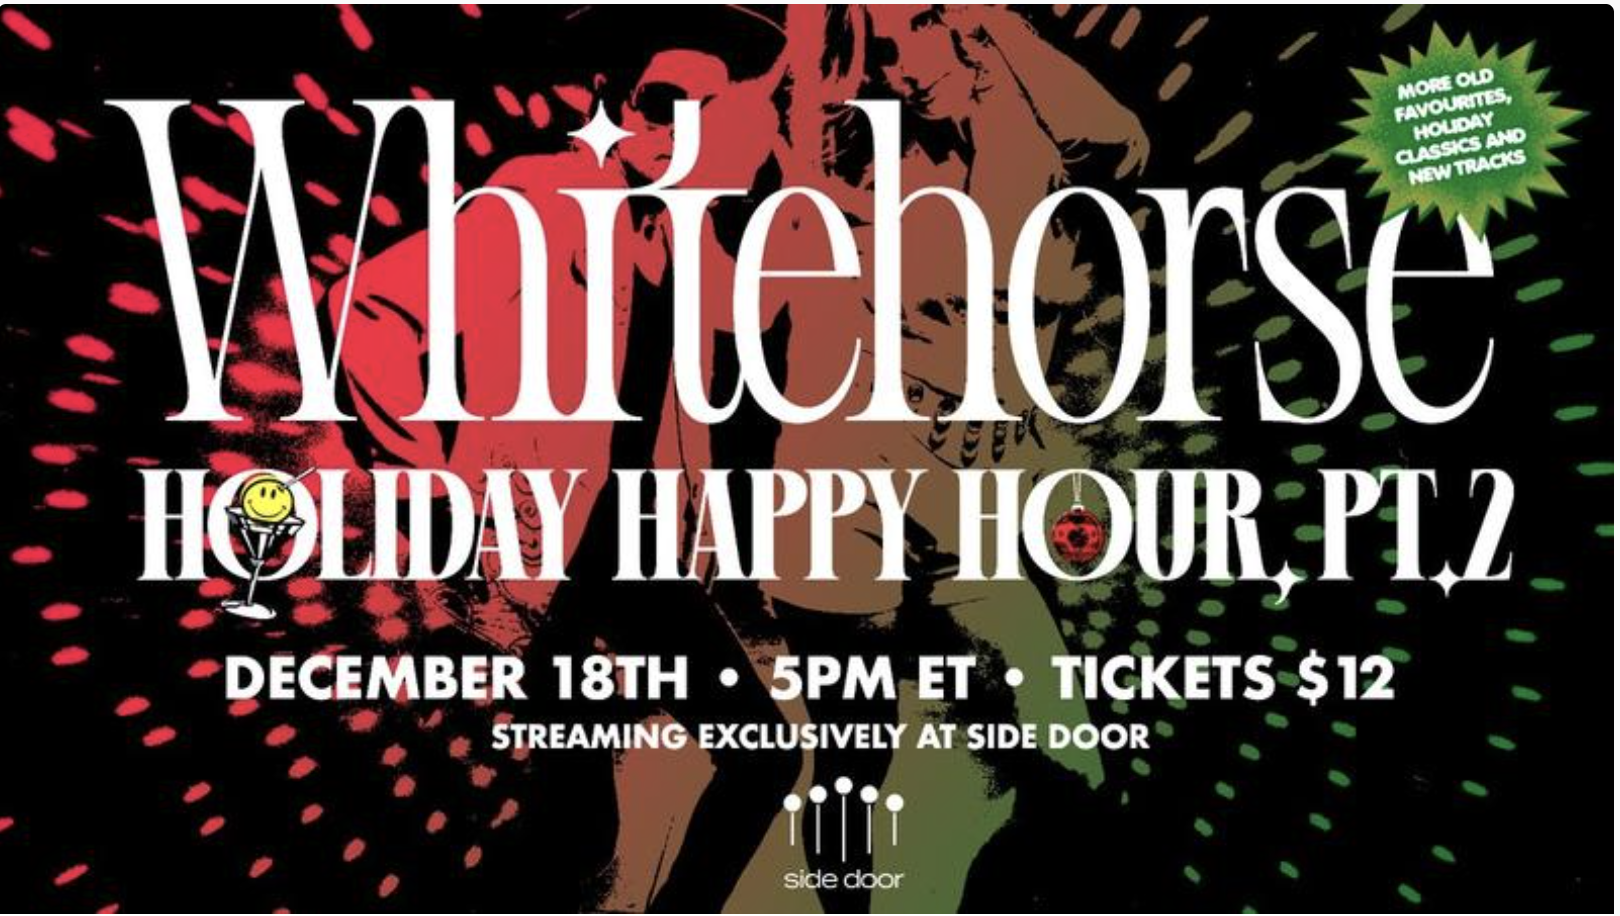 Whitehorse Holiday Happy Hour pt 2.png